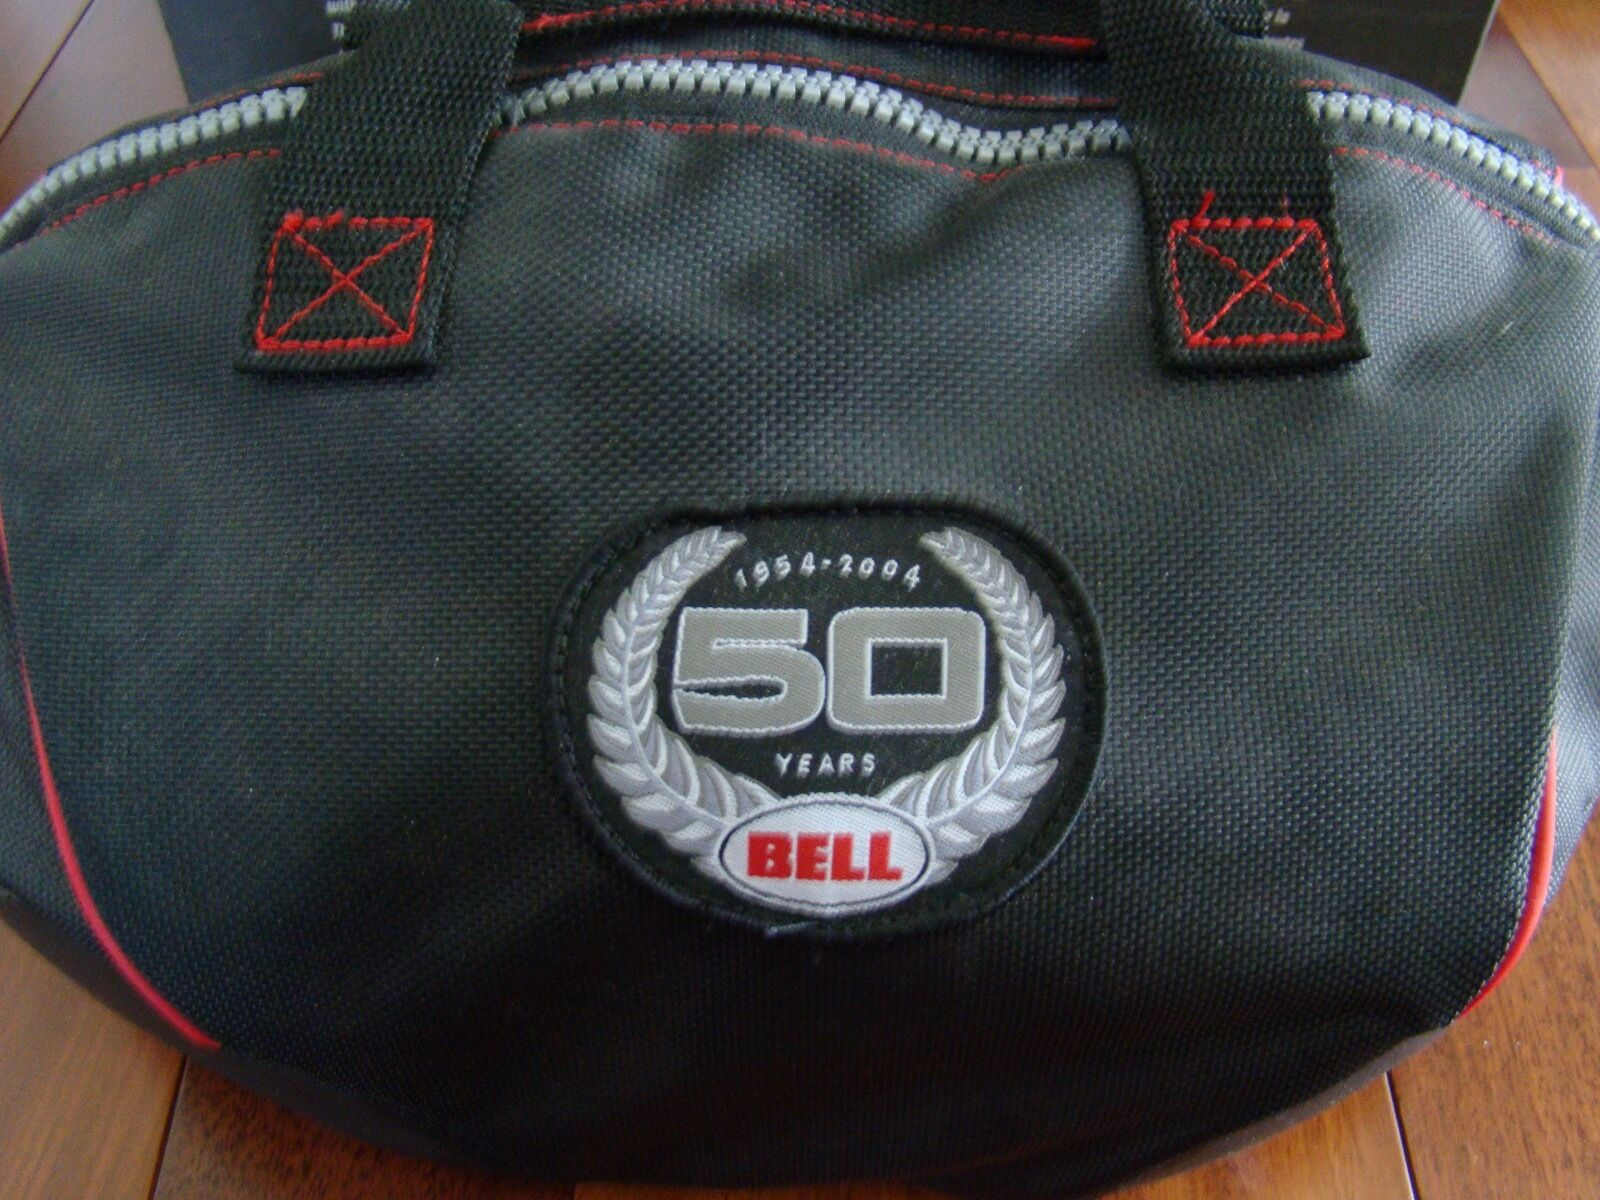 Bell Ghisallo Bicycle Helmet 50th Anniversary with Limited Edition Carrying Bag